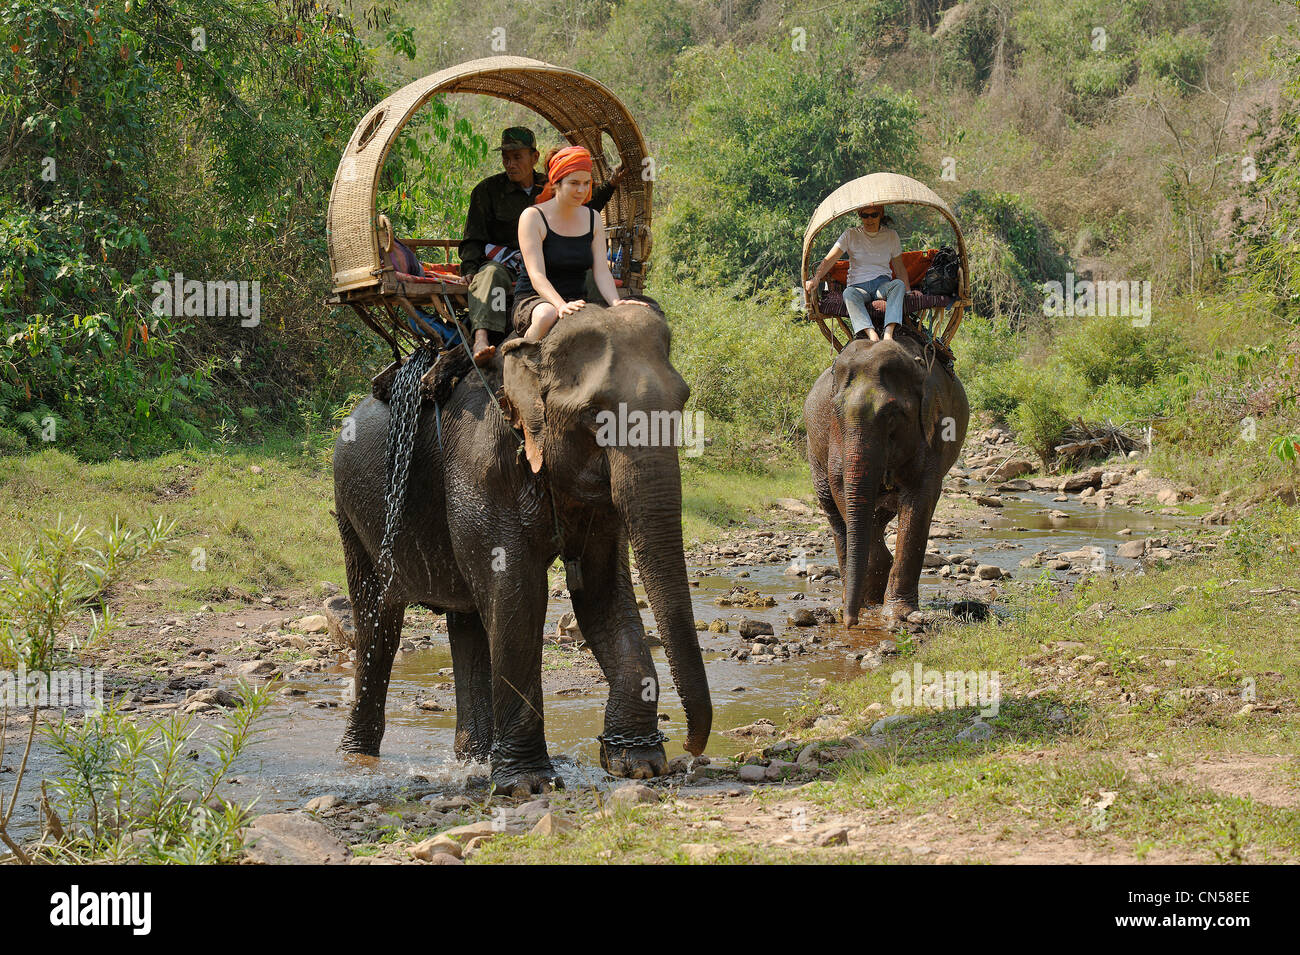 Laos, Sainyabuli Province, Thanoon, trek on elephant back in palanquins, crossing a river - Stock Image